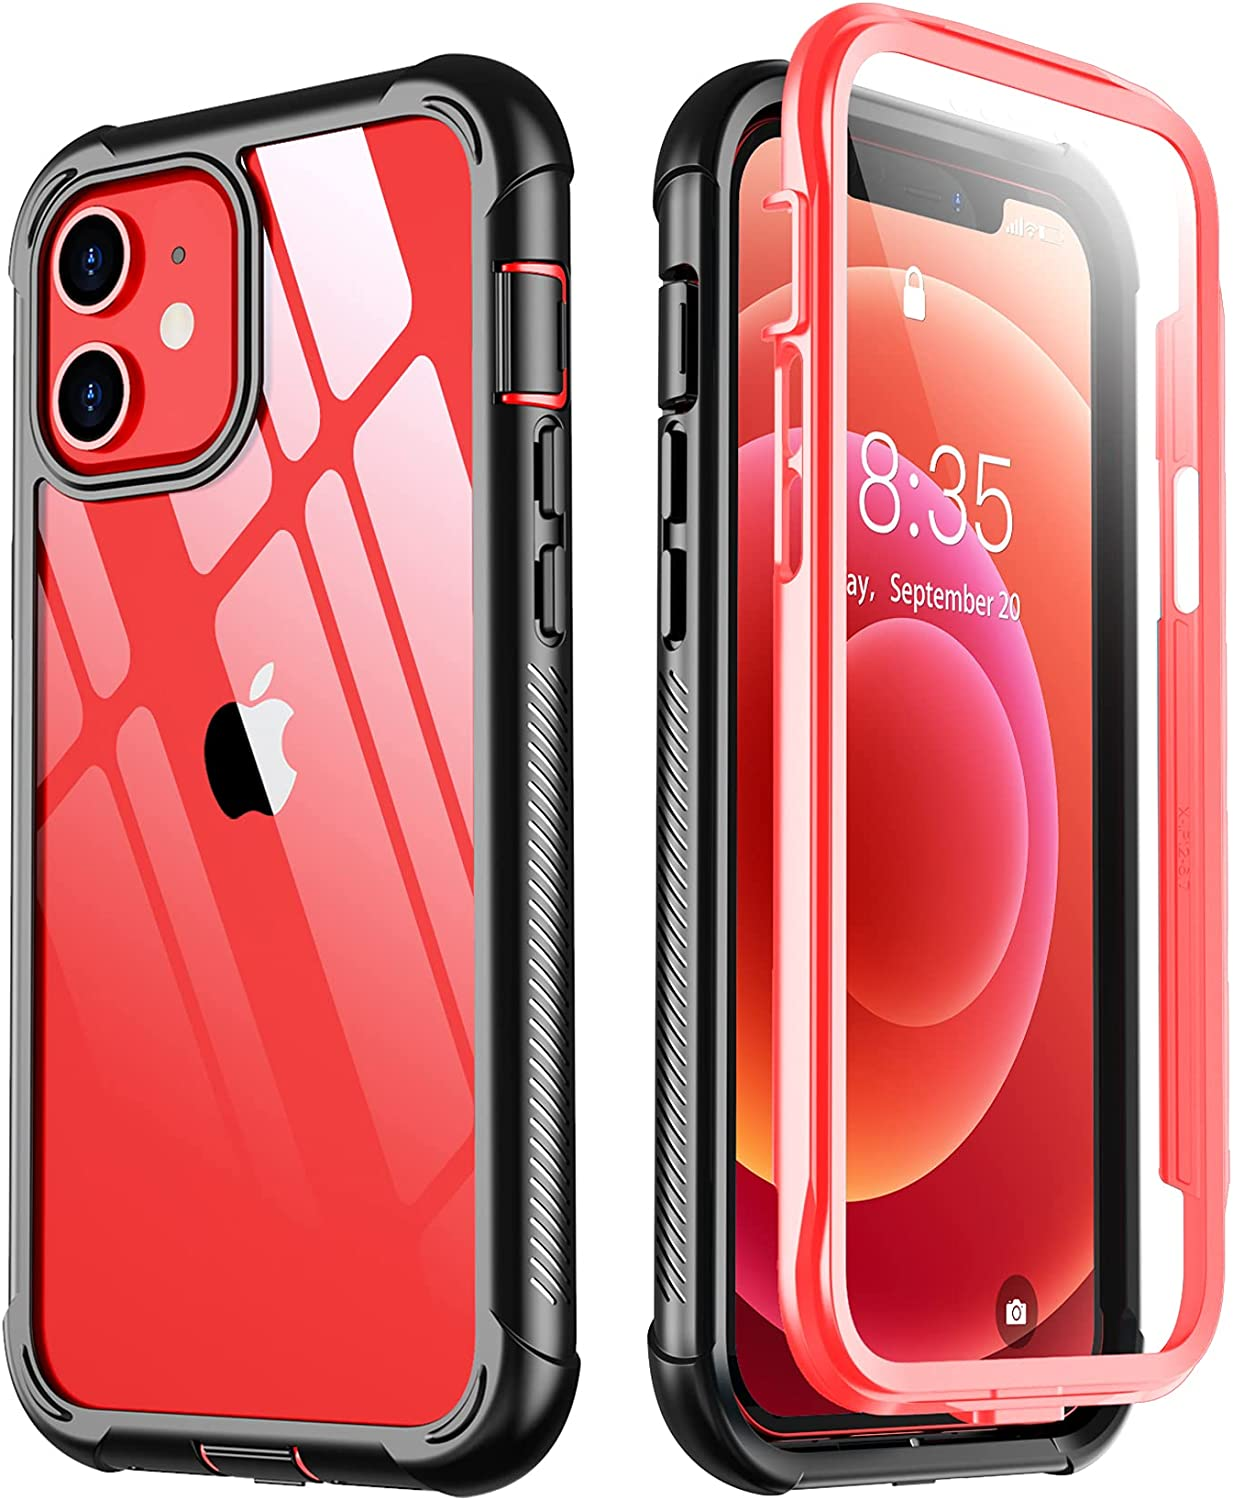 Temdan for iPhone 12 Case iPhone 12 Pro Case with Built-in Screen Protector, Military Drop Grade Shockproof Clear Cover 360 Full Body Protective Phone Case for iPhone 12/12 Pro 6.1 inch -Red/Black